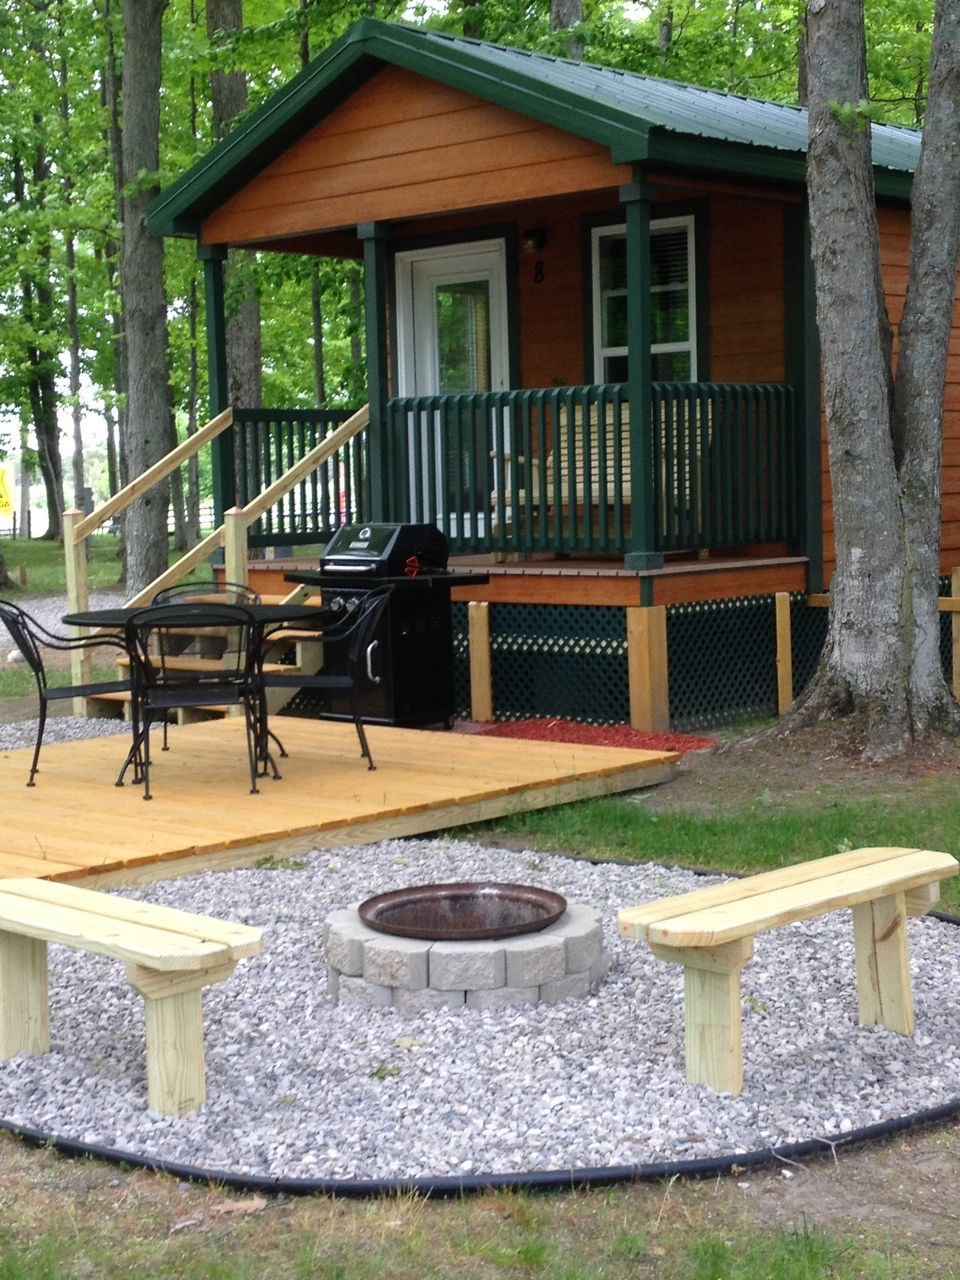 Traverse City Koa In Buckley Mi Near Traverse City